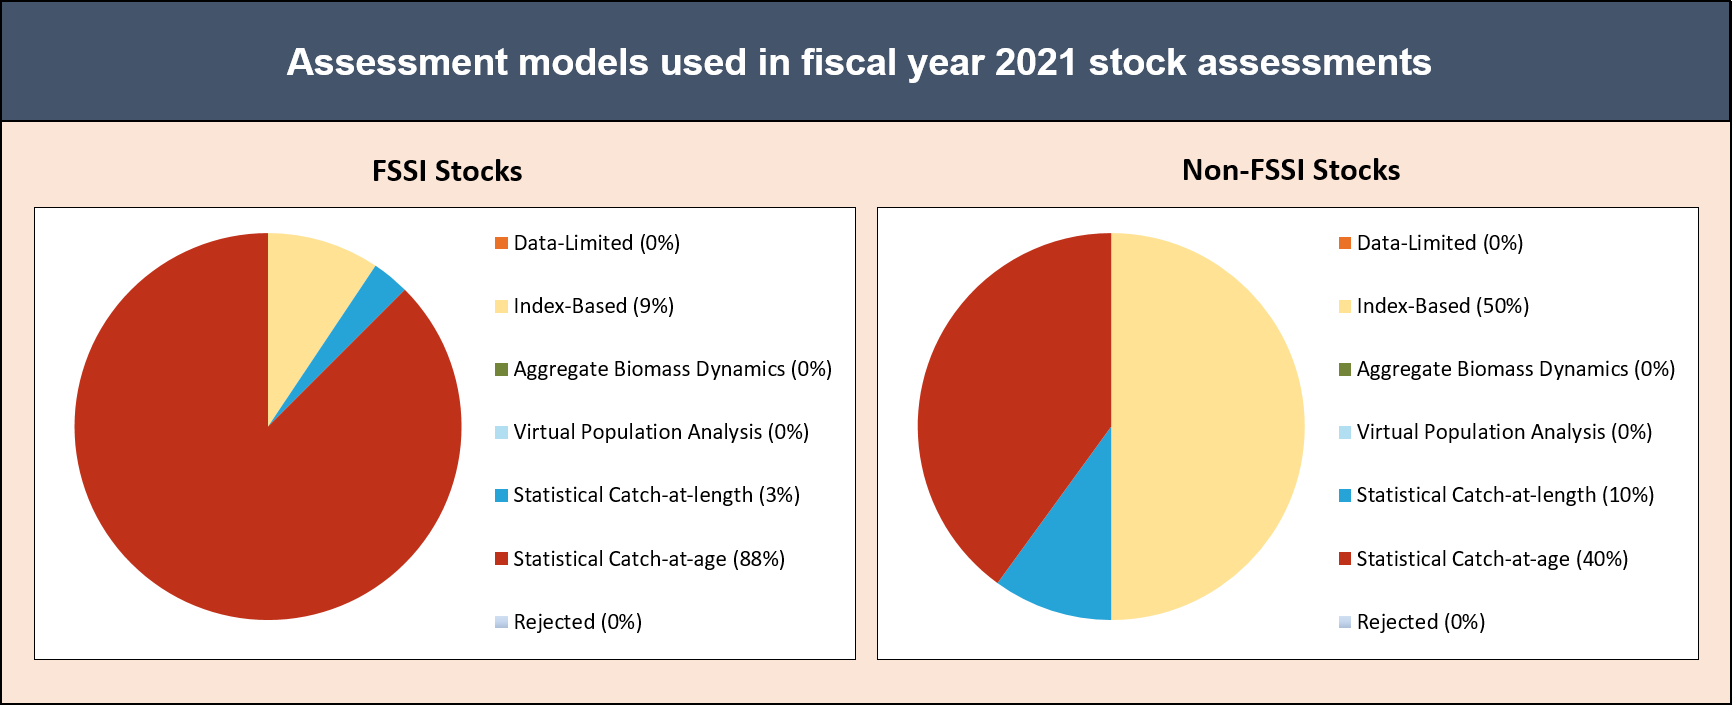 Pie charts depicting the types of stock assessment models used in fiscal year 2021 stock assessments.